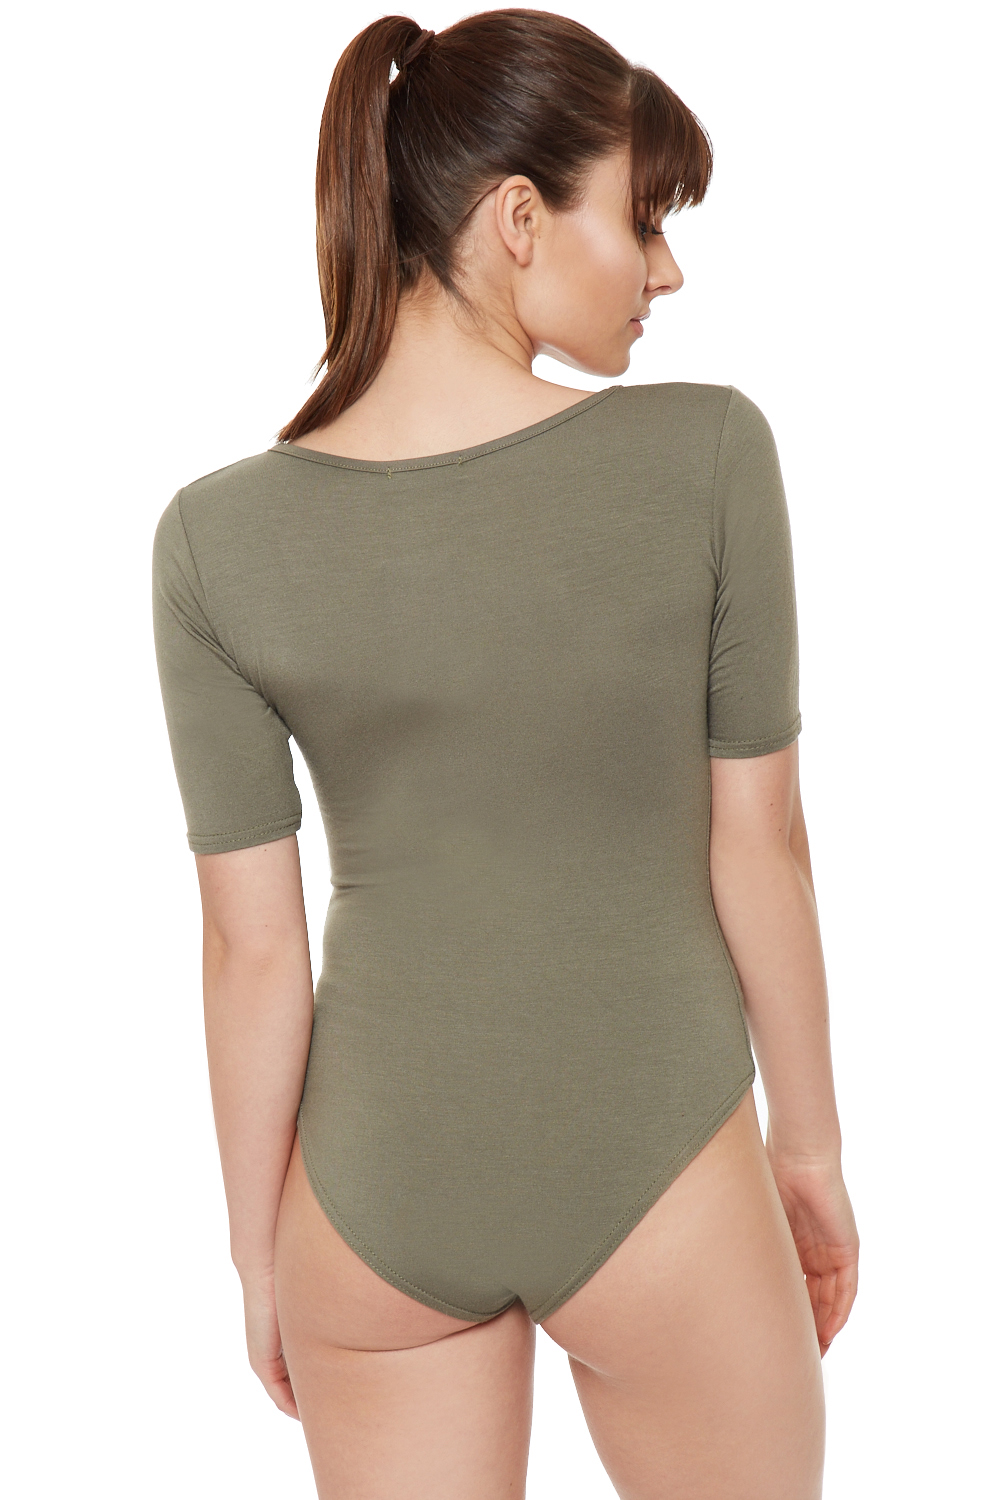 Shop for short sleeve bodysuit online at Target. Free shipping on purchases over $35 and save 5% every day with your Target REDcard.